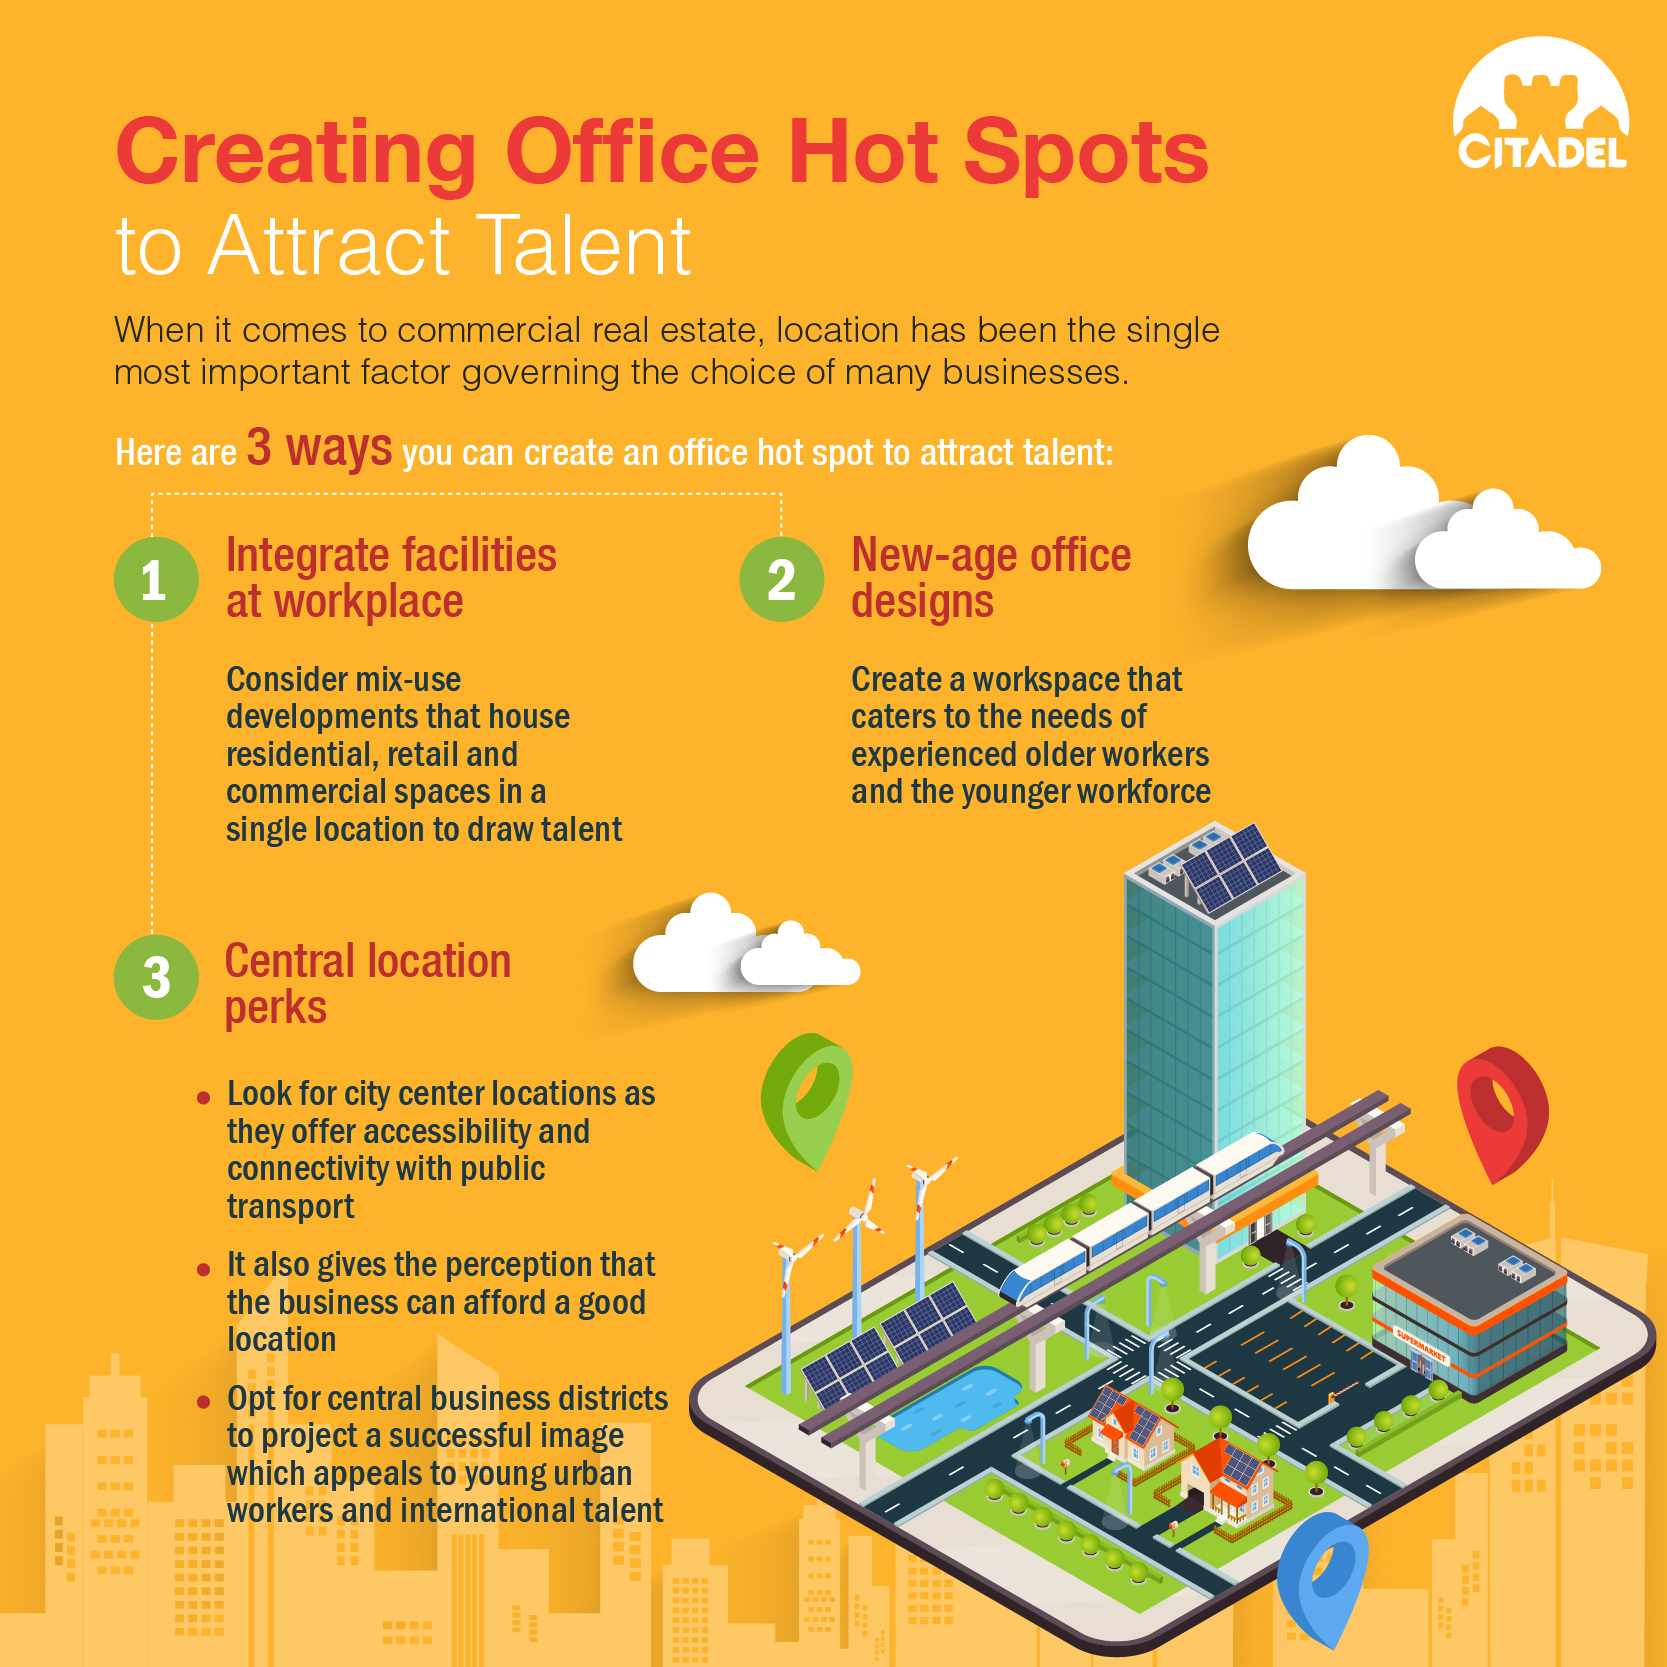 Creating office hot spots to attract talent